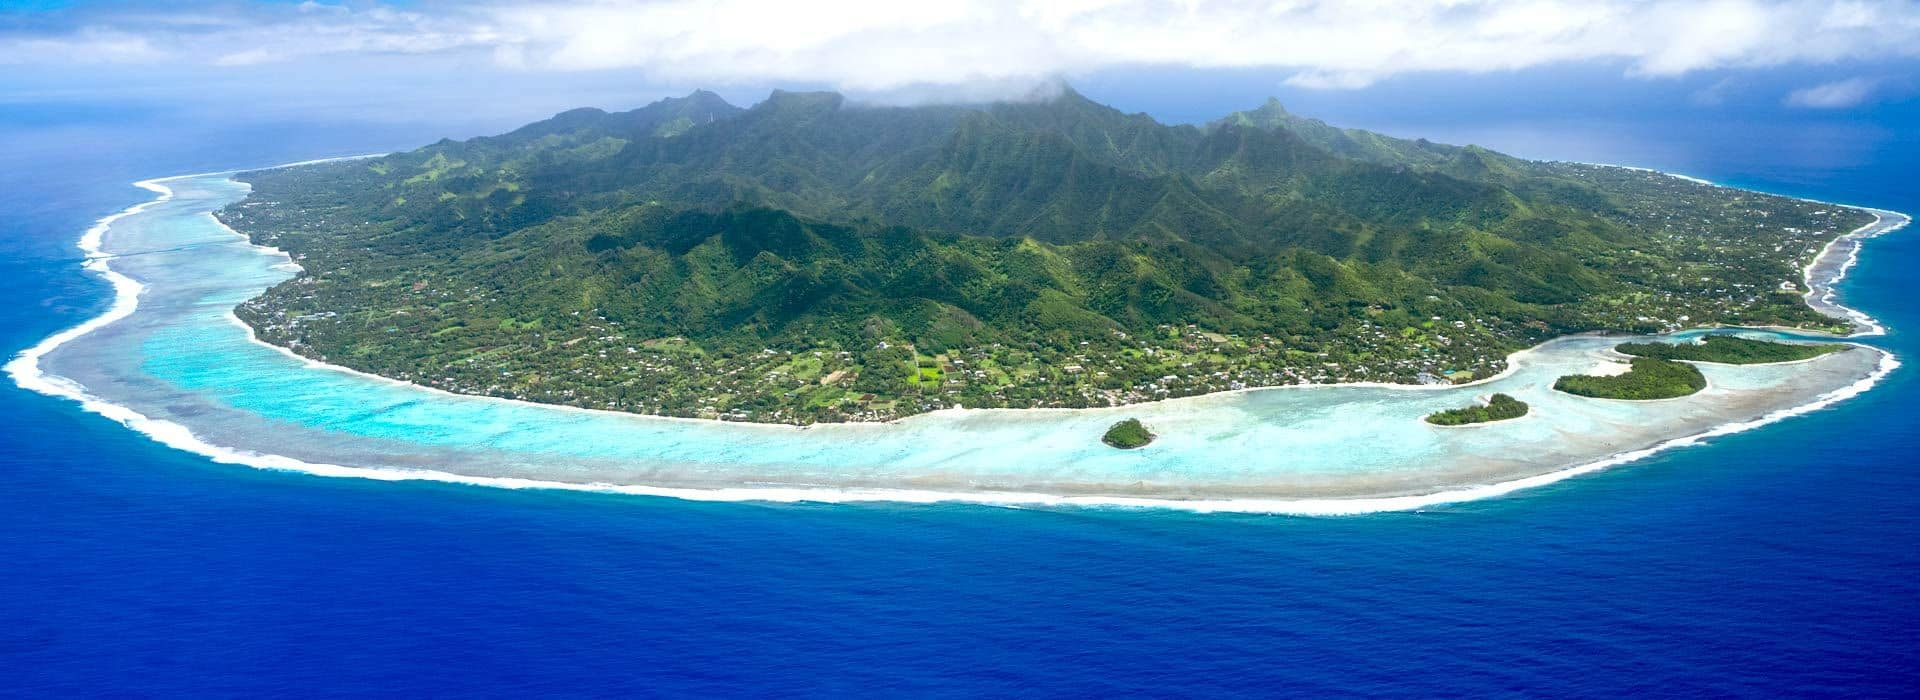 Los Angeles to Cook Islands $551 RT on Air New Zealand (travel Aug-May 2018) Nonstop